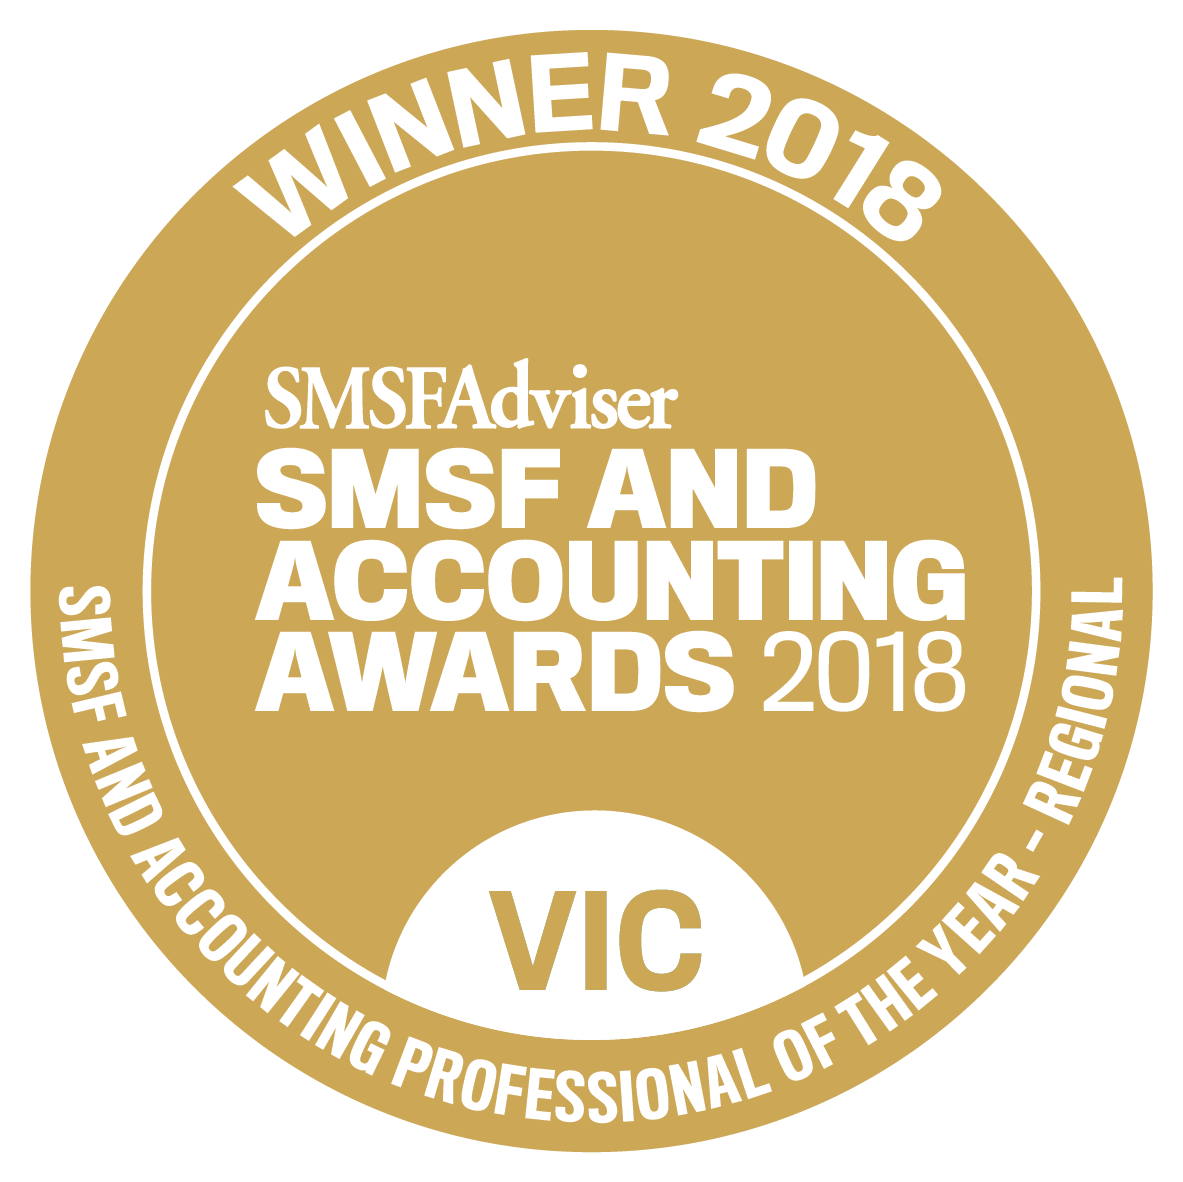 SMSF Professional of the Year Award